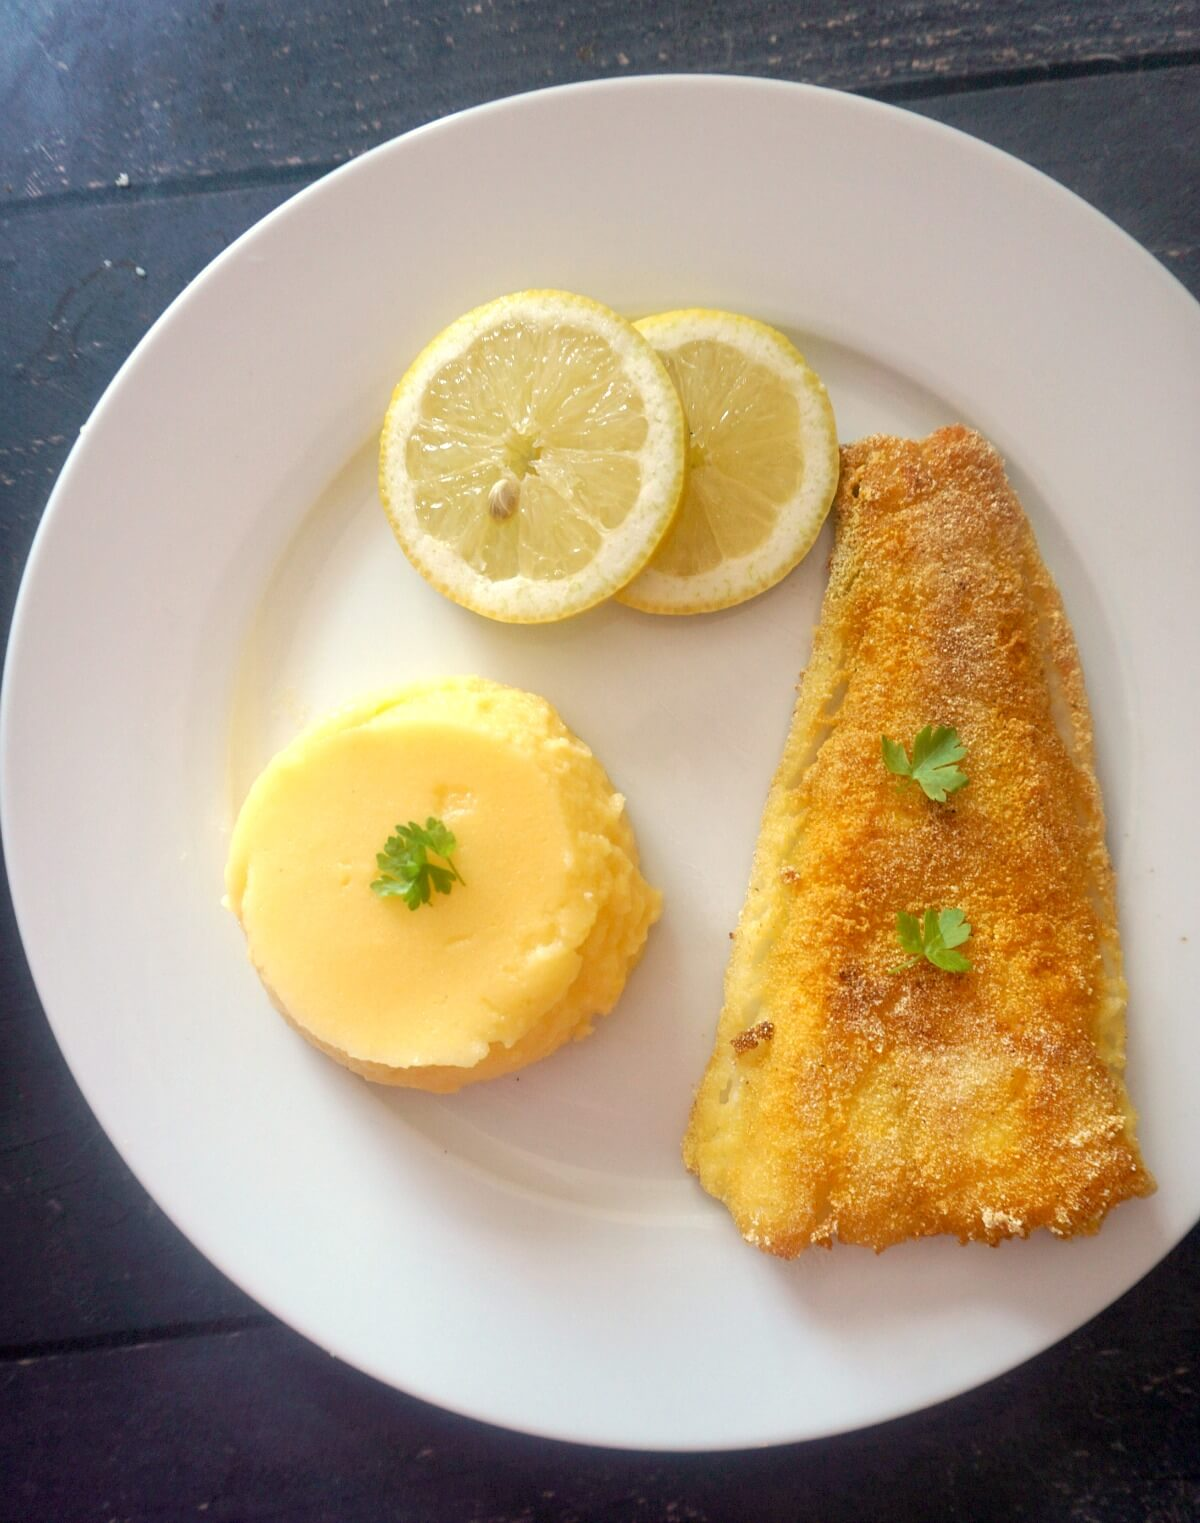 A white plate with a fried fish fillet, 2 slices of lemon and polenta